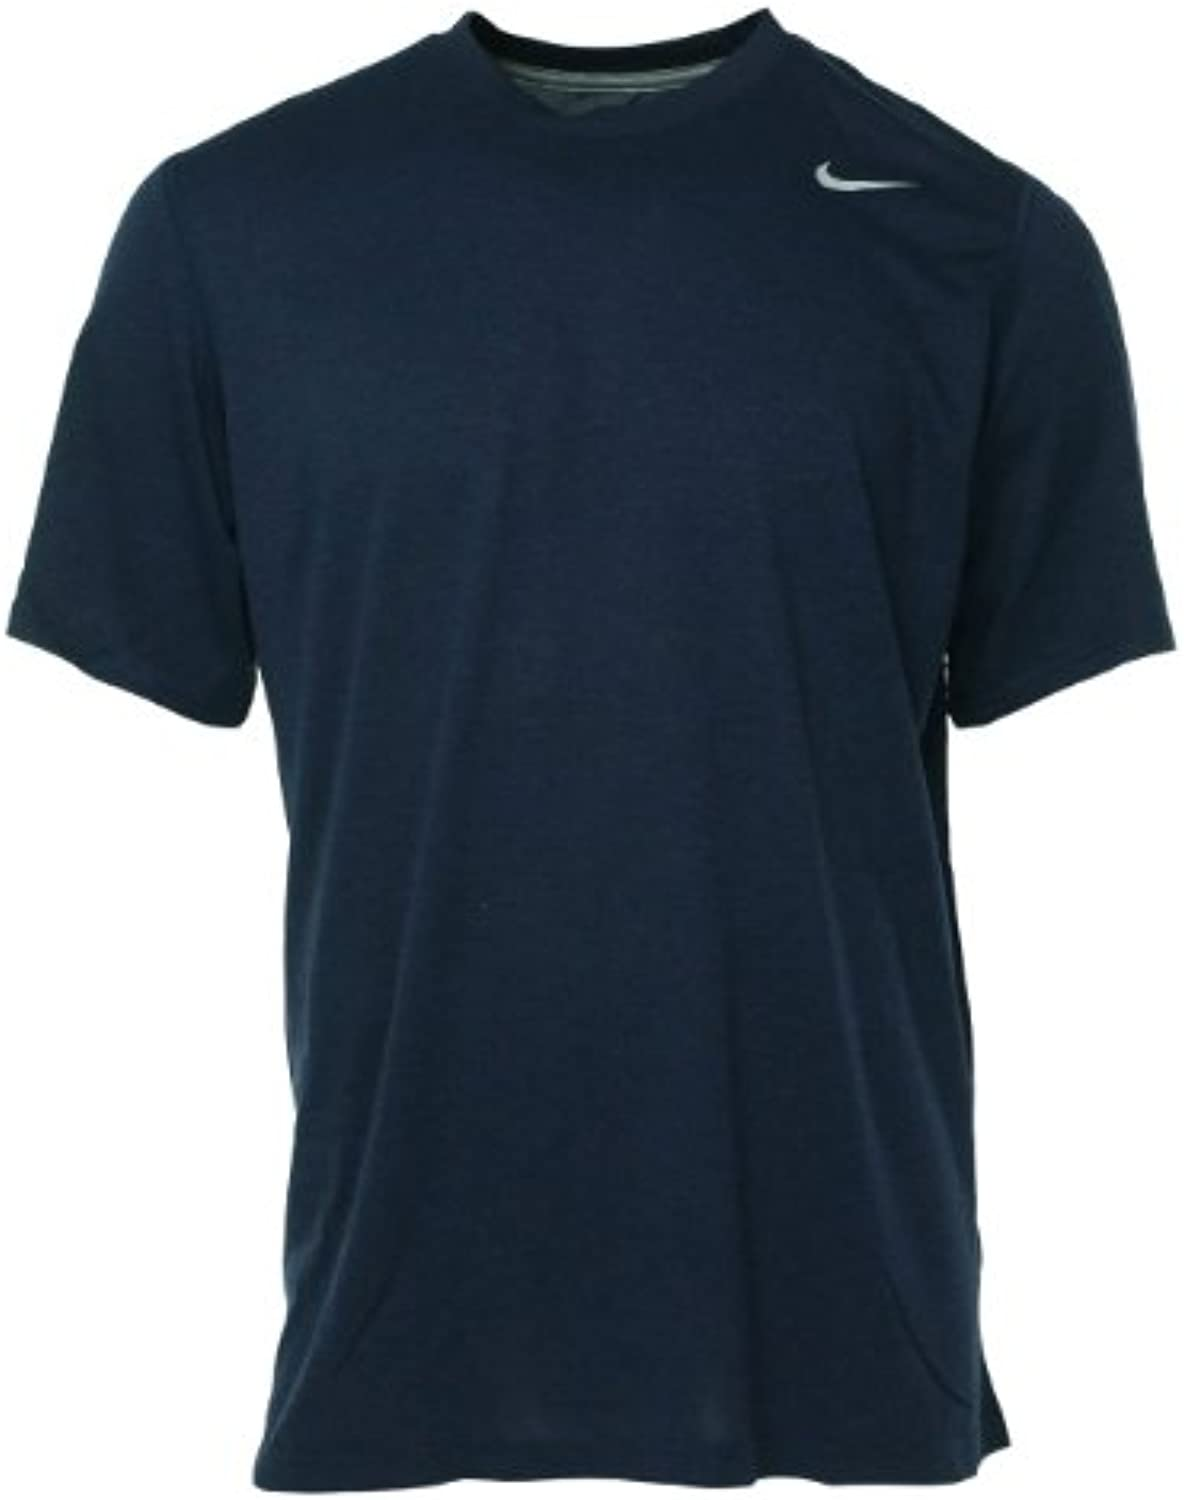 Nike 384407 Legend Dri Fit Short Sleeve Tee   Navy